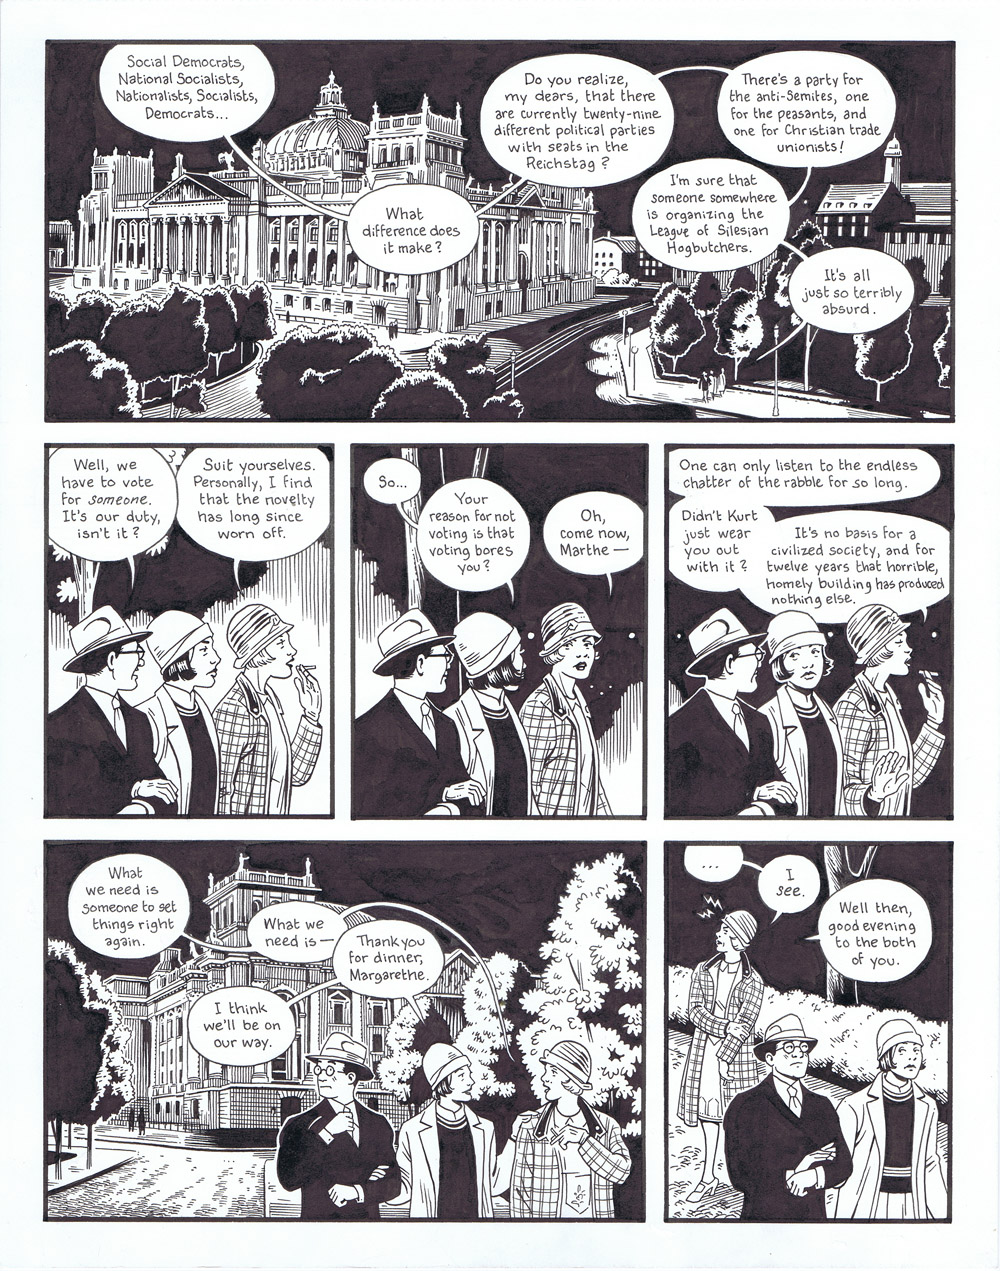 Berlin: Book 2 - page 195